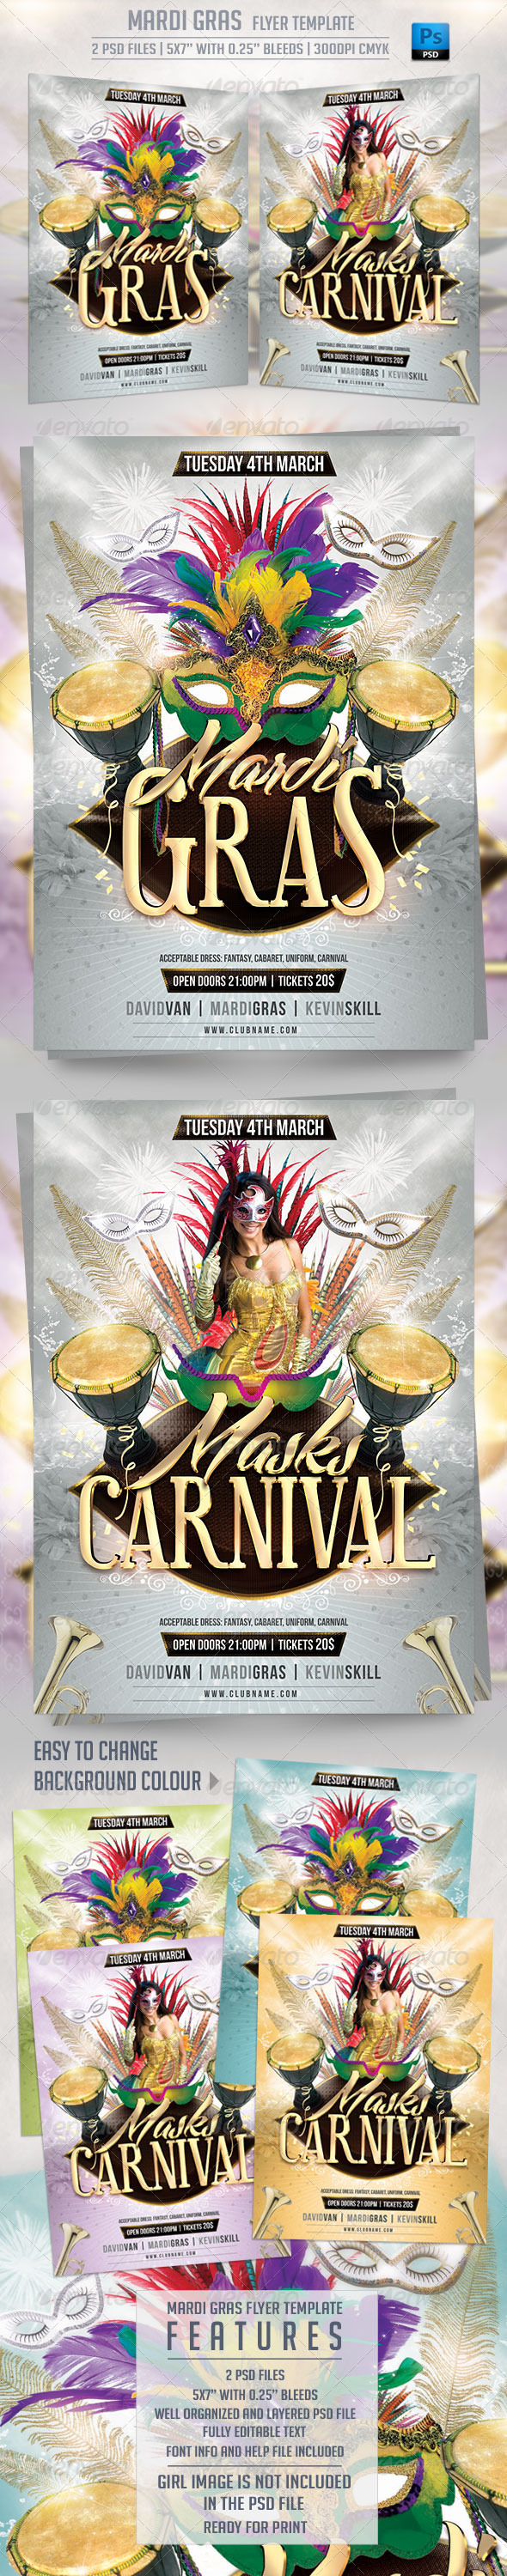 GraphicRiver Mardi Gras Flyer Template 6542856